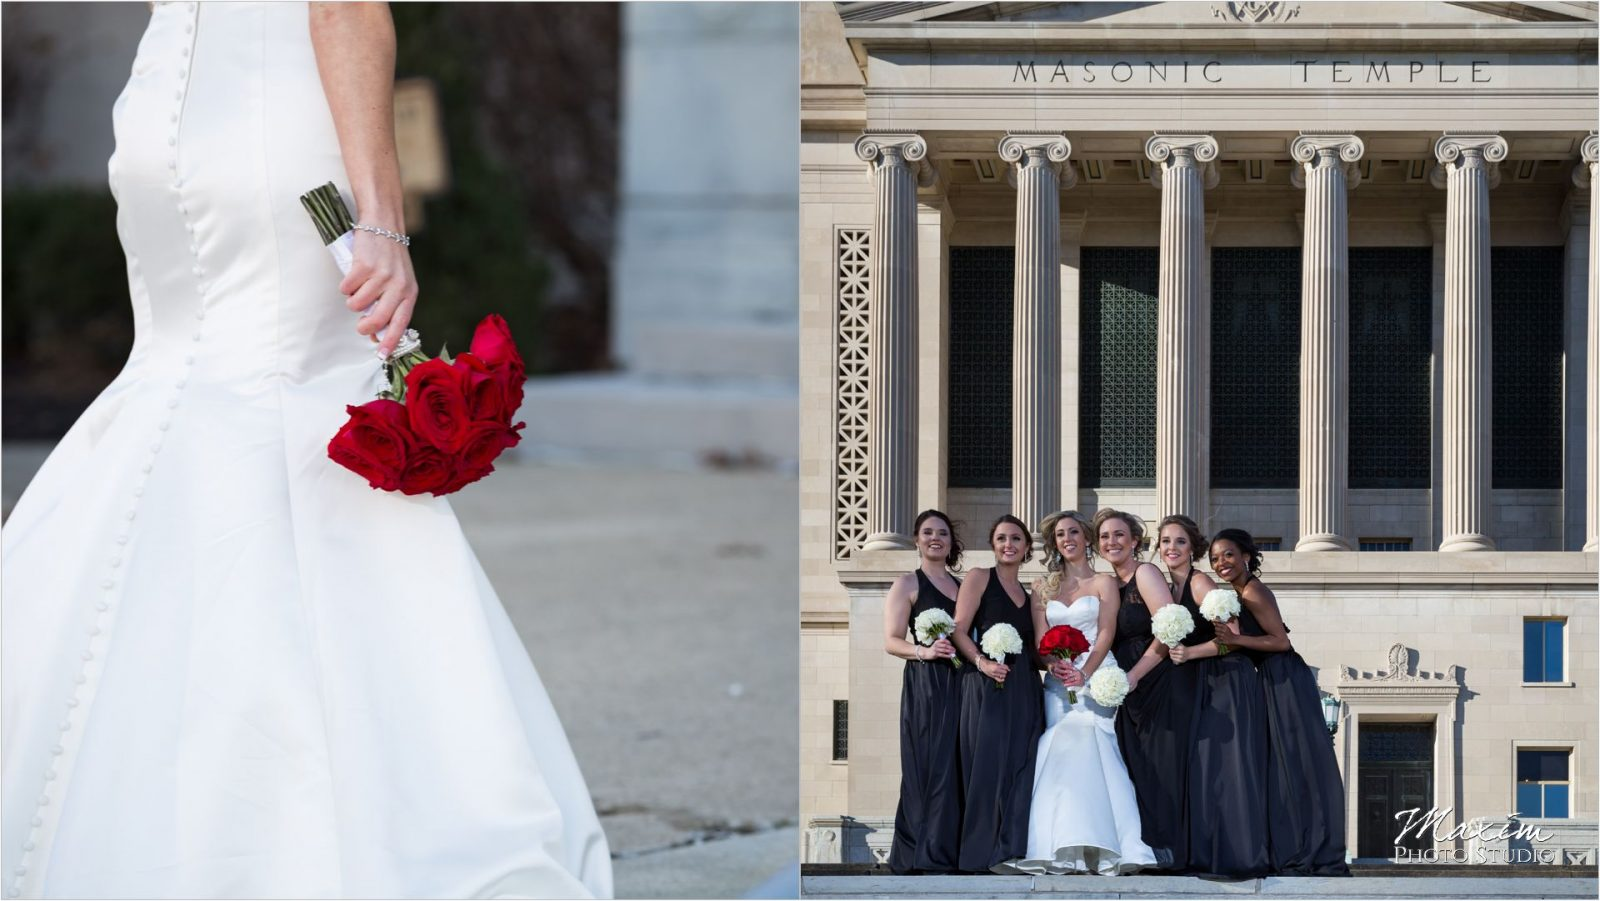 Dayton Masonic Temple Bride portraits